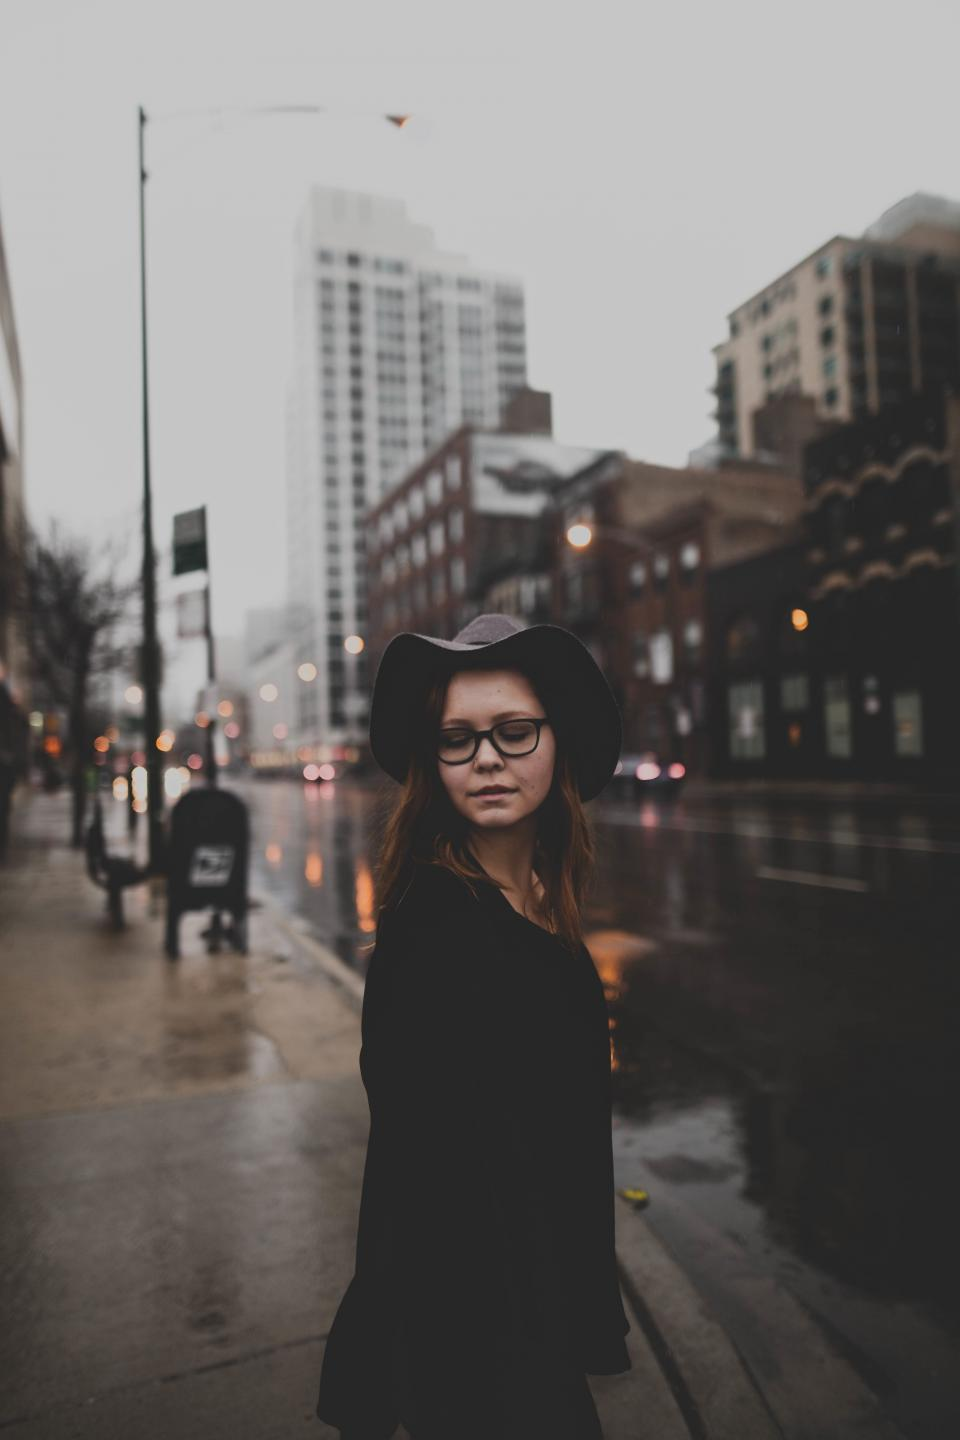 people, woman, urban, city, street, rain, wet, road, establishment, building, store, restaurant, shop, eyeglasses